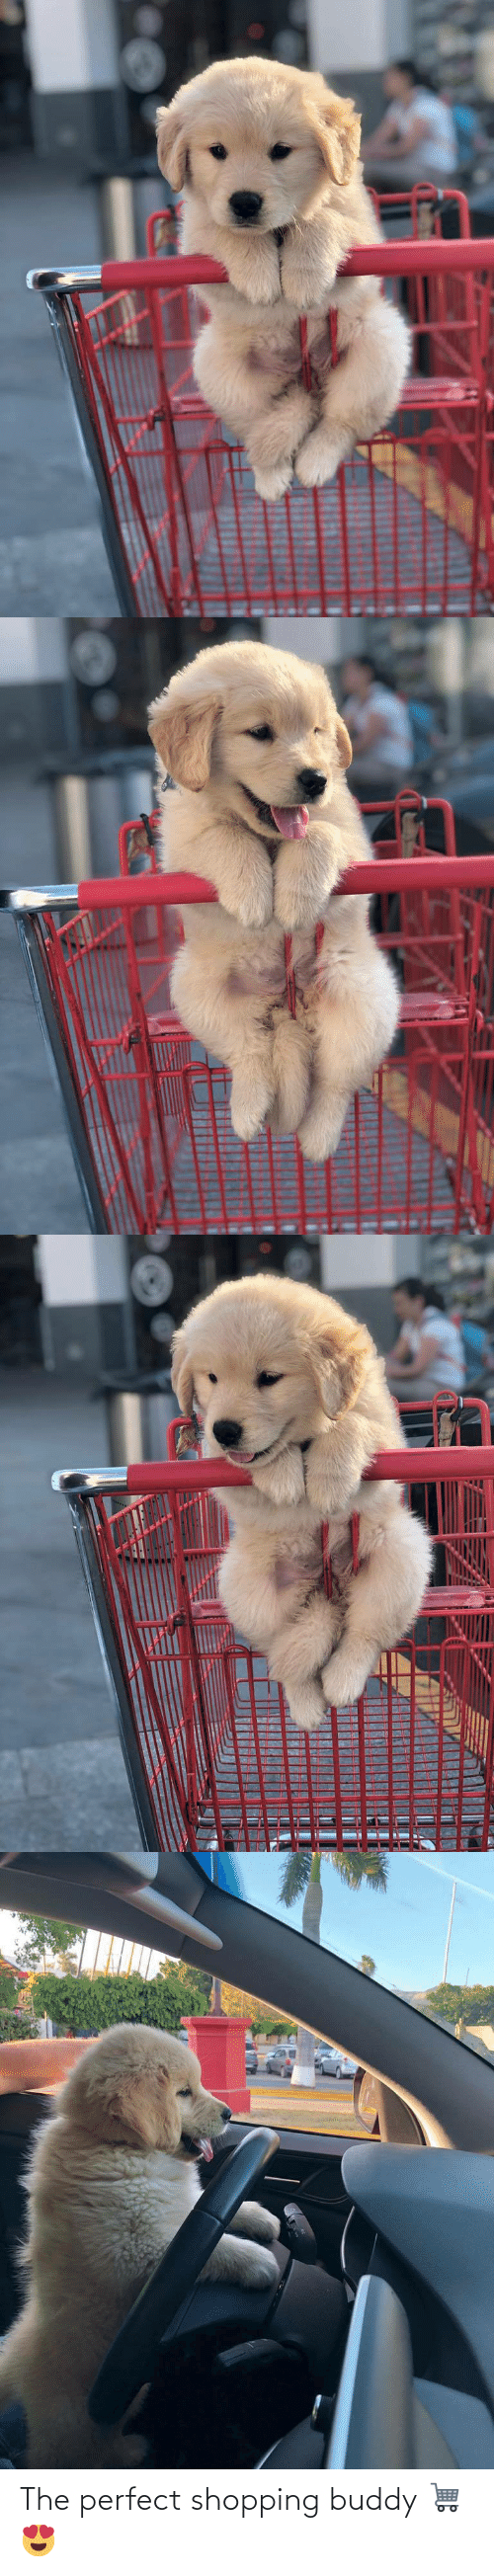 Shopping: The perfect shopping buddy 🛒😍